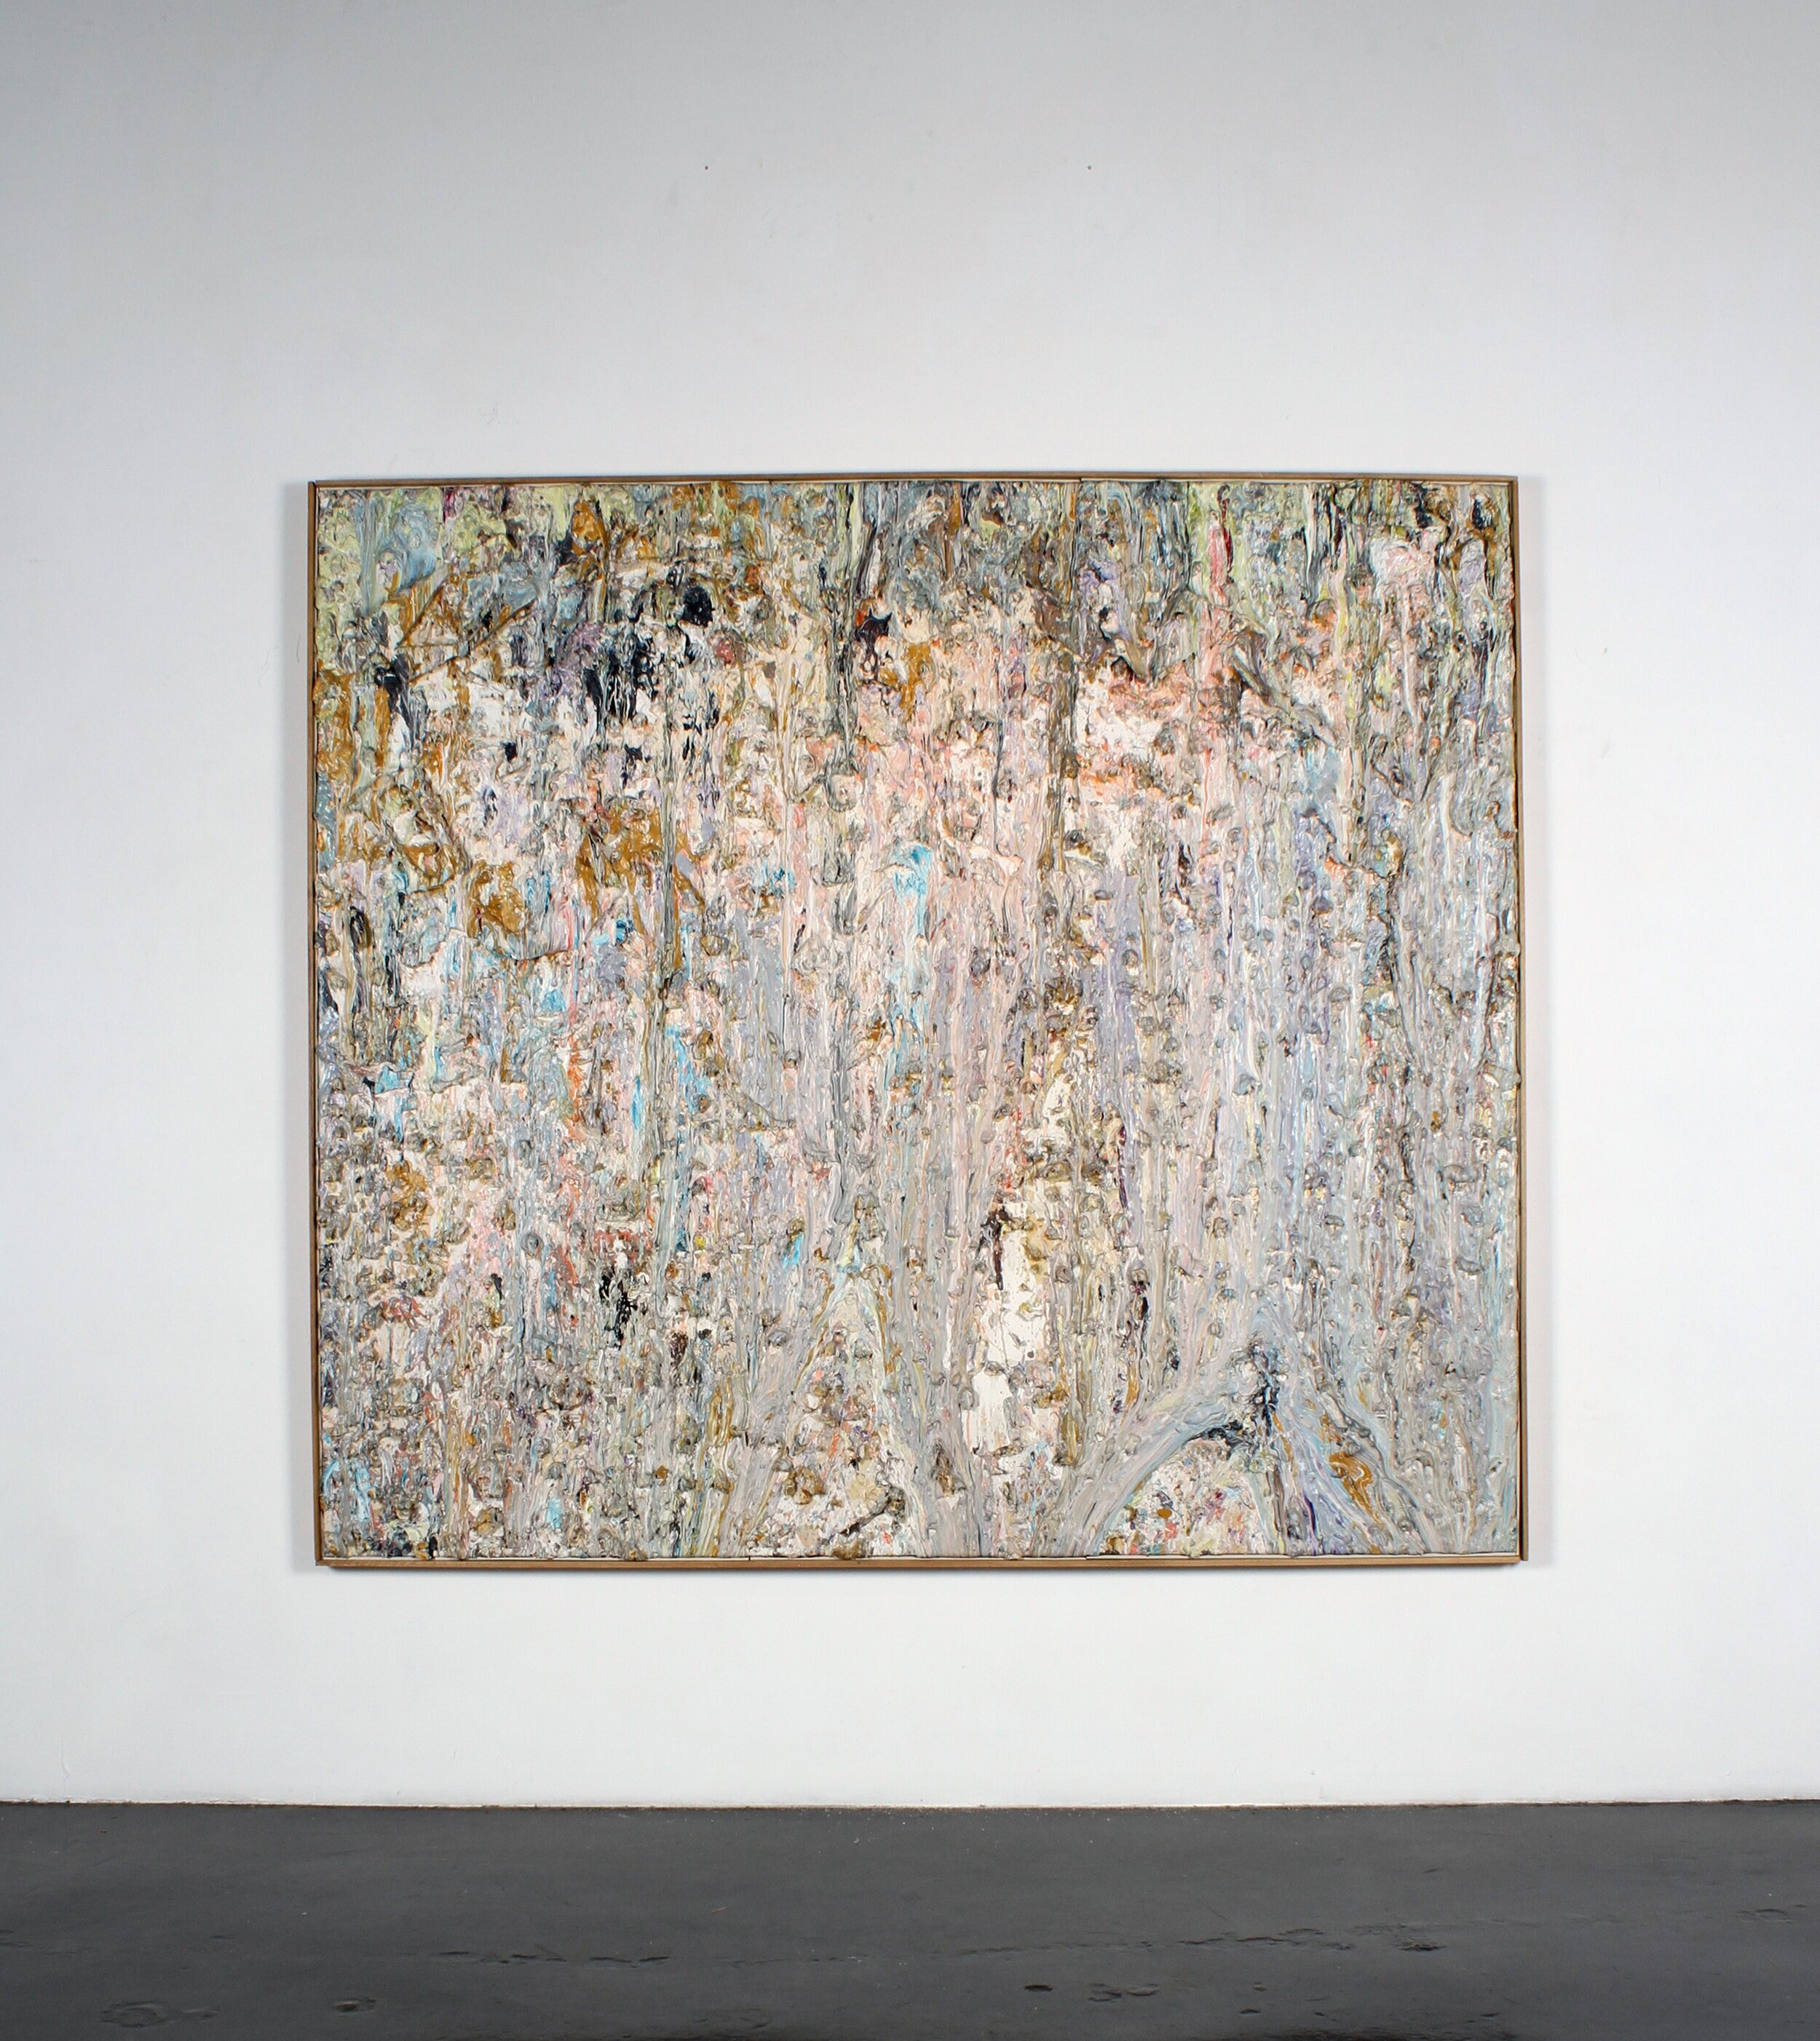 """Larry Poons, Log Train, 1985, acrylic on canvas, 78 1/4"""" x 90"""""""